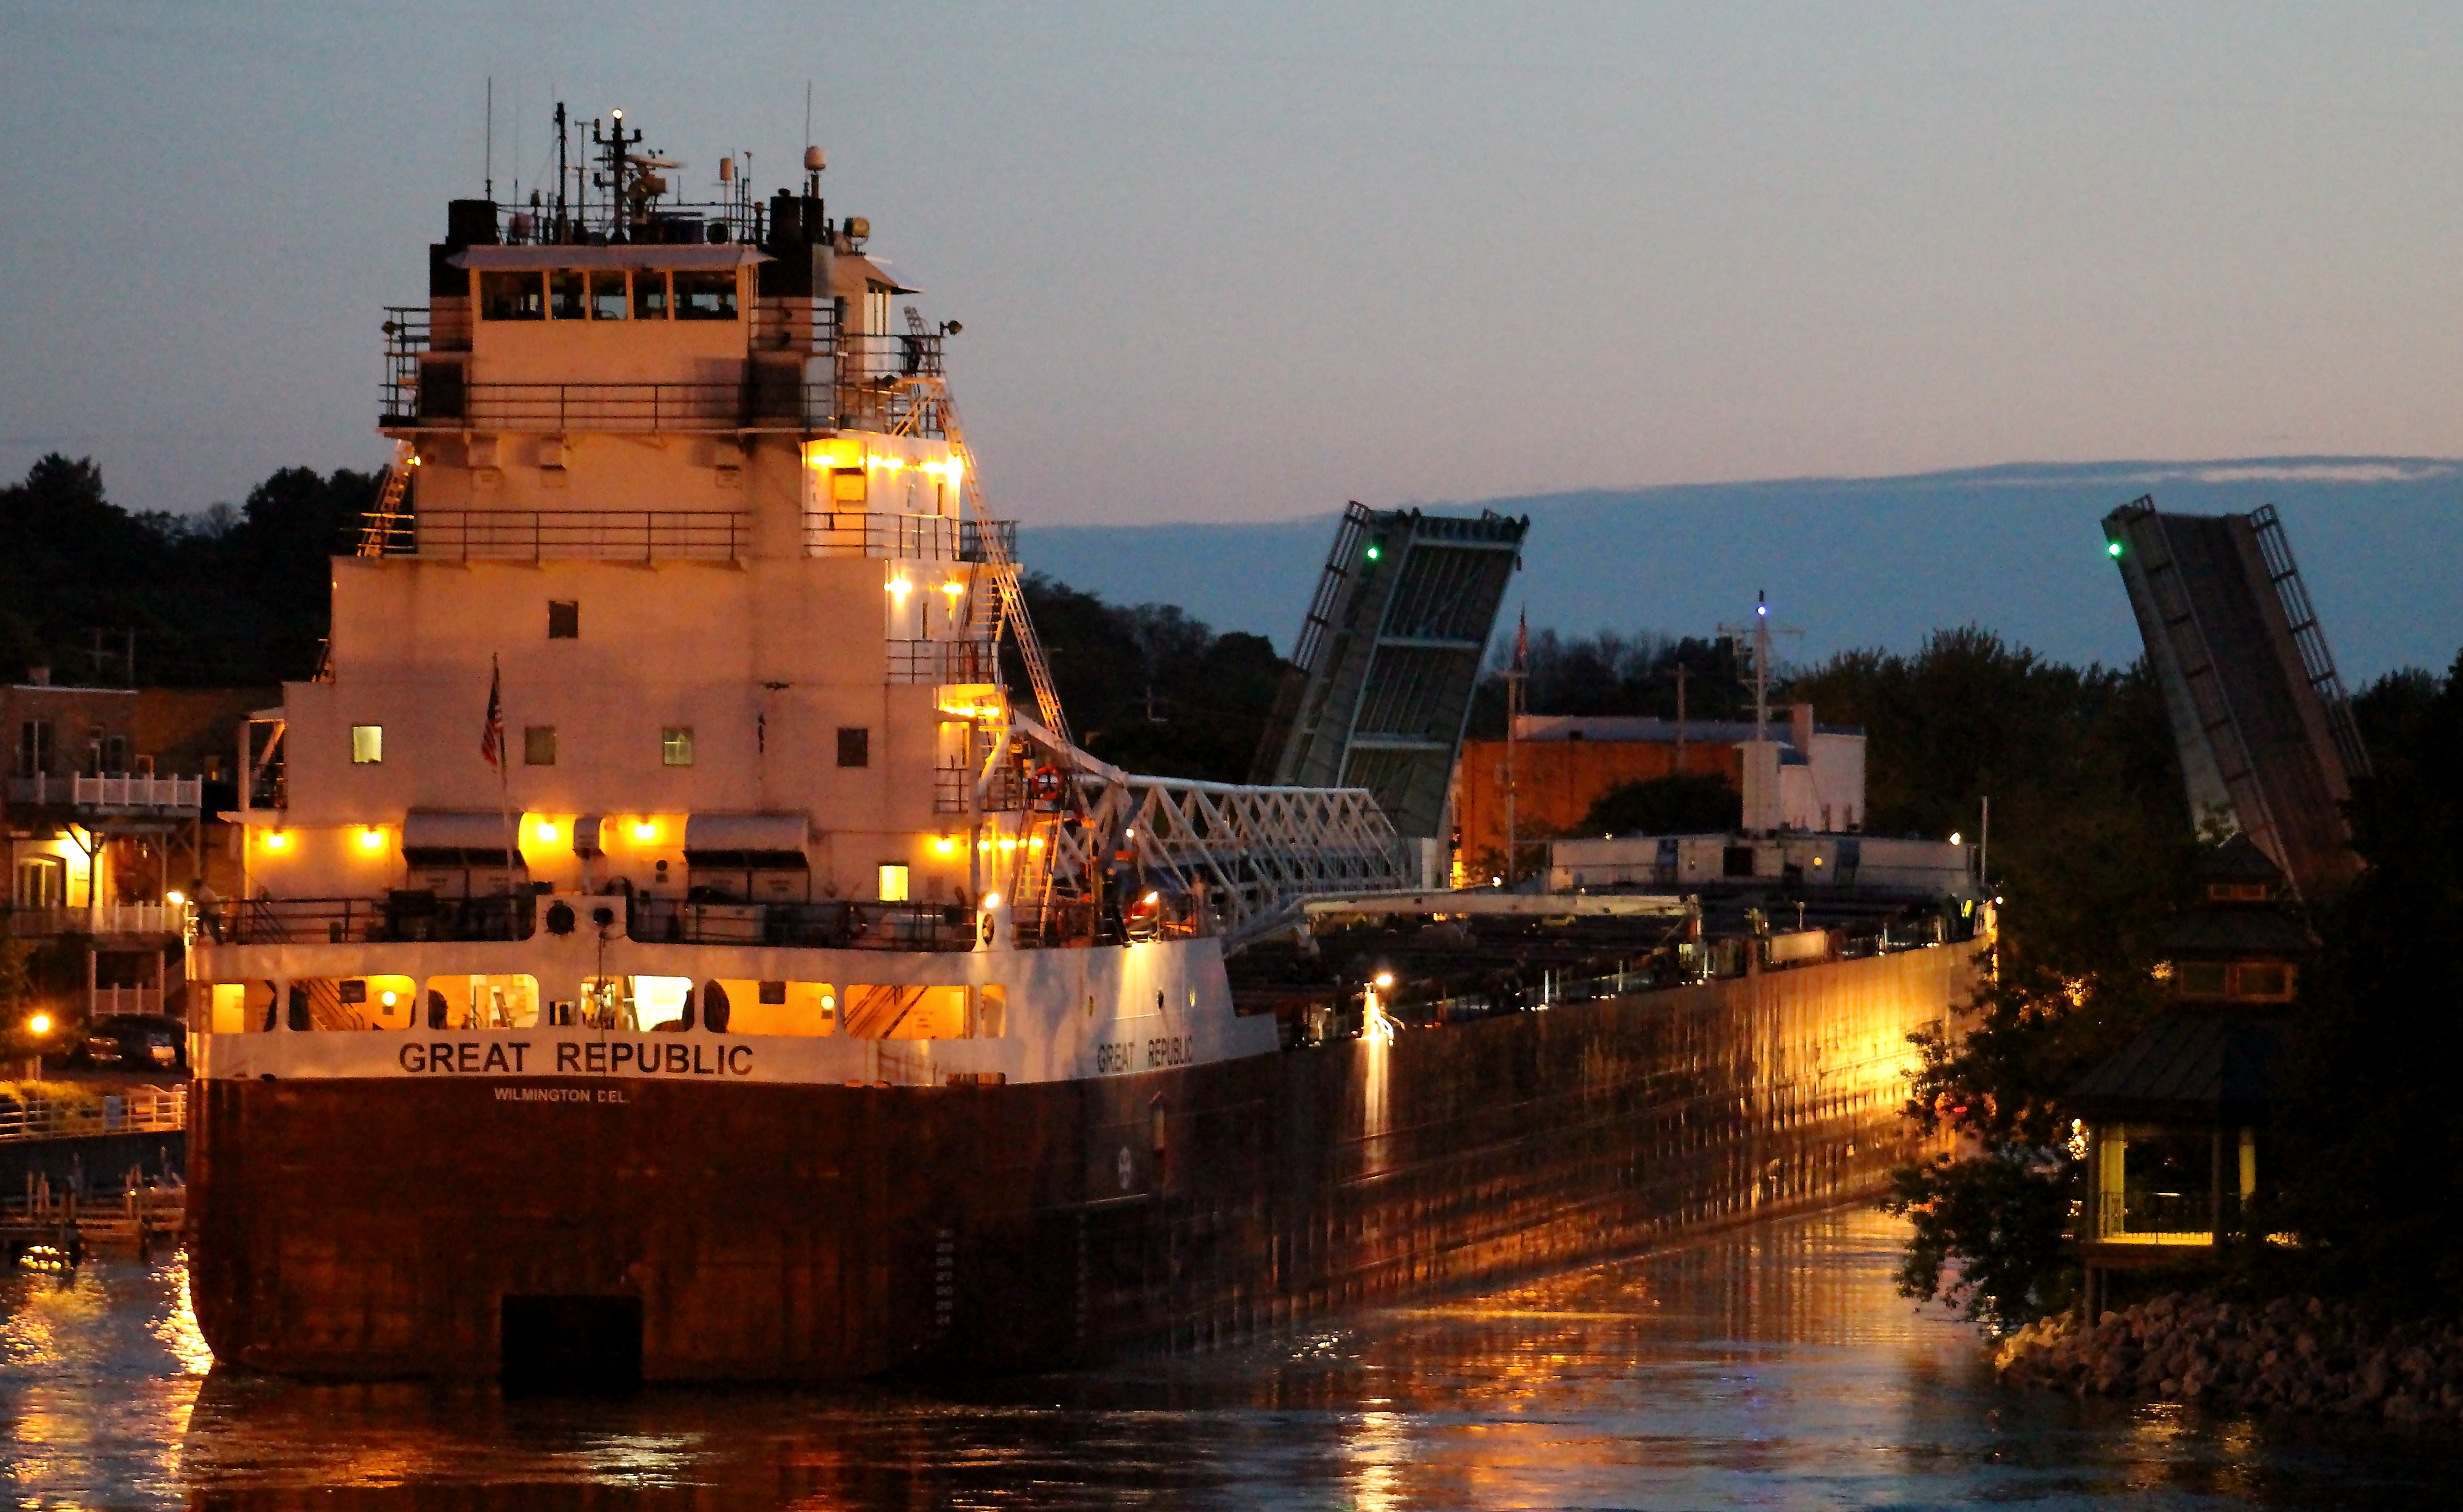 Freighter Great Republic is seen at twilight in the Manistee River Channel